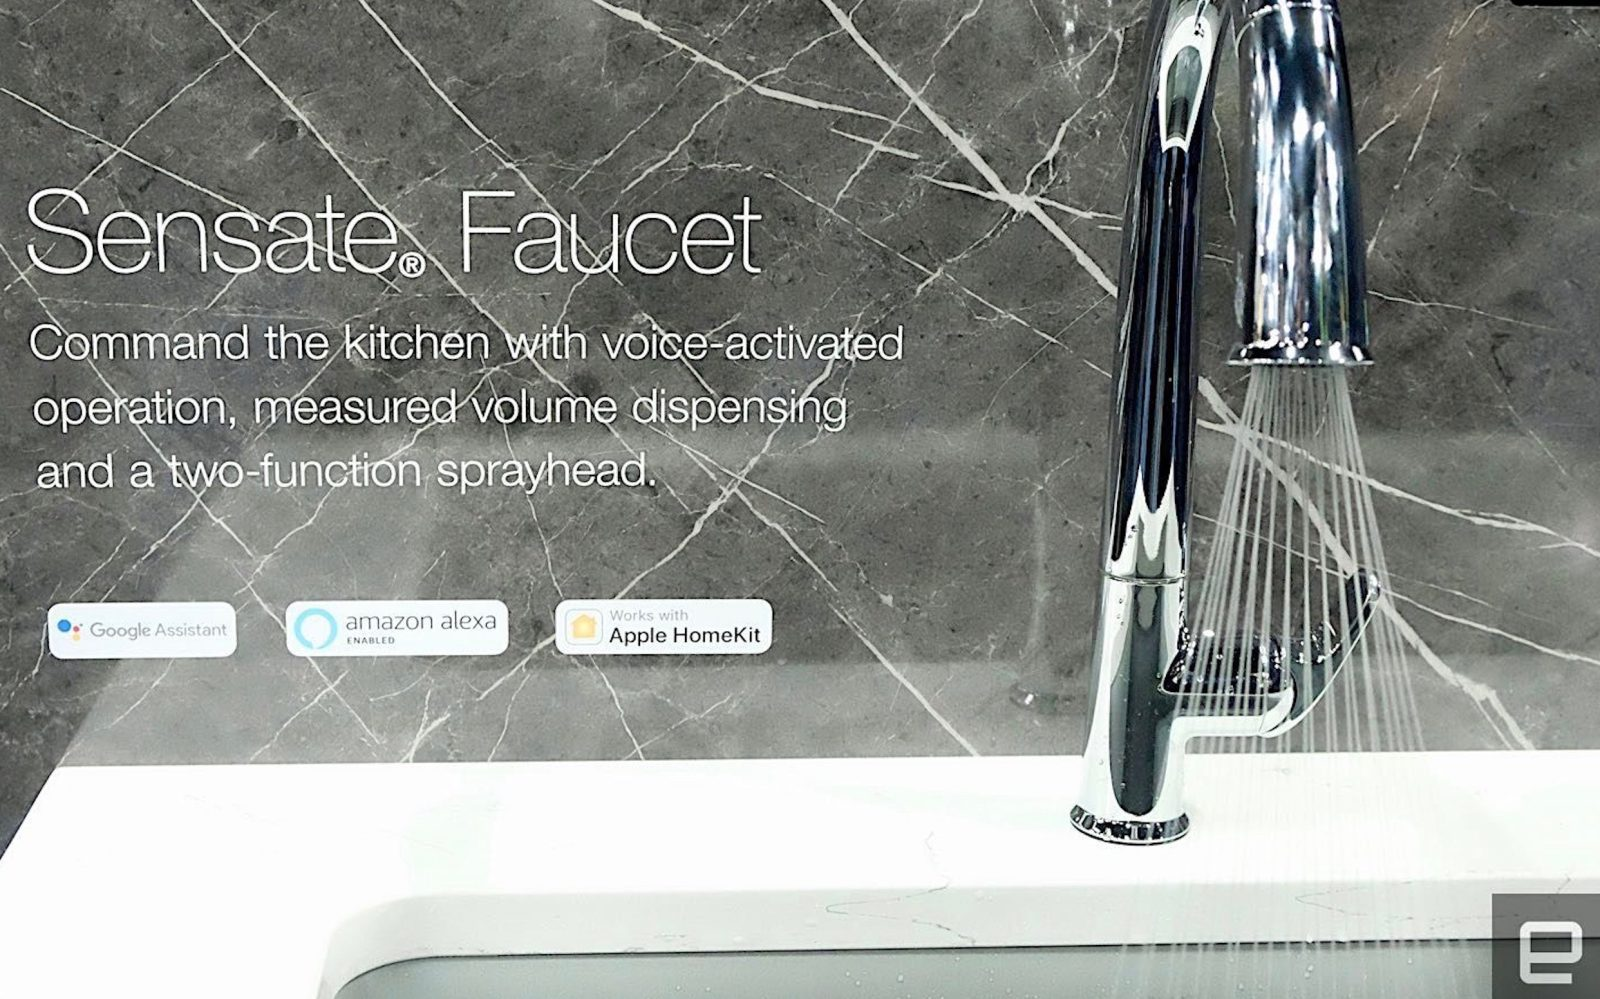 Kohler unveils new hands-free Sensate faucet with HomeKit integration